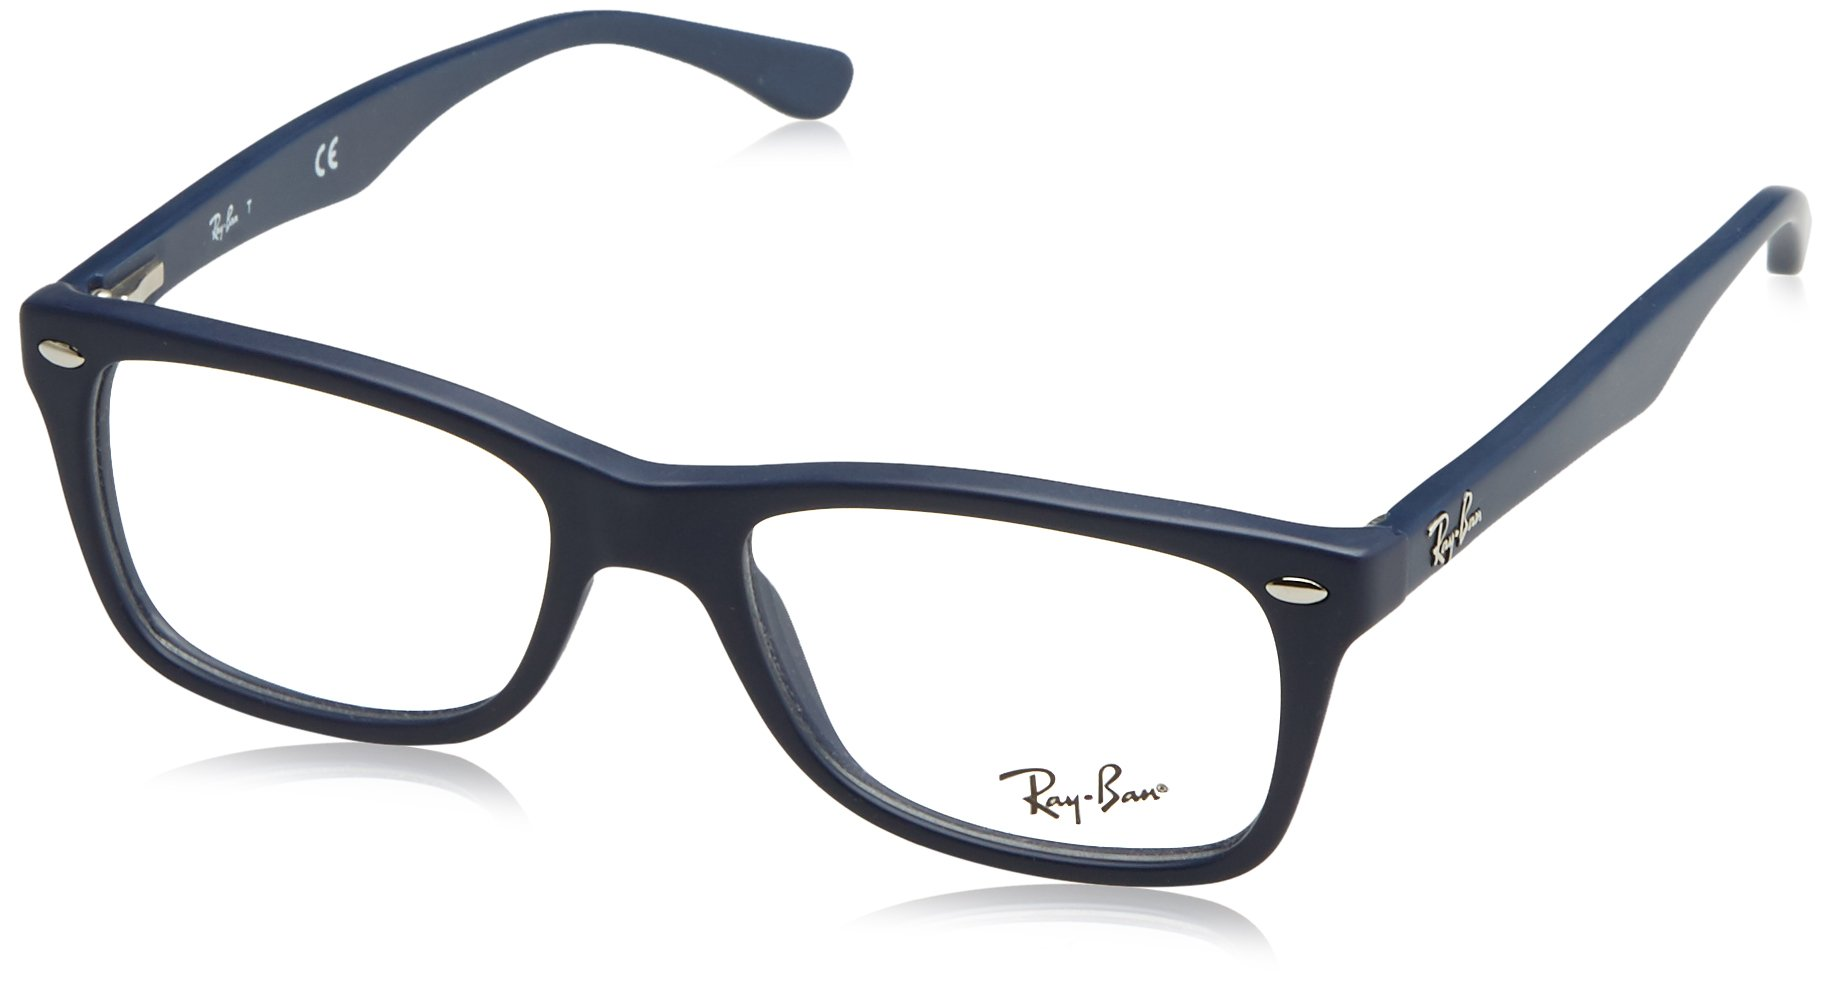 Ray-Ban Women's RX5228 Eyeglasses Sand Blue 50mm by Ray-Ban